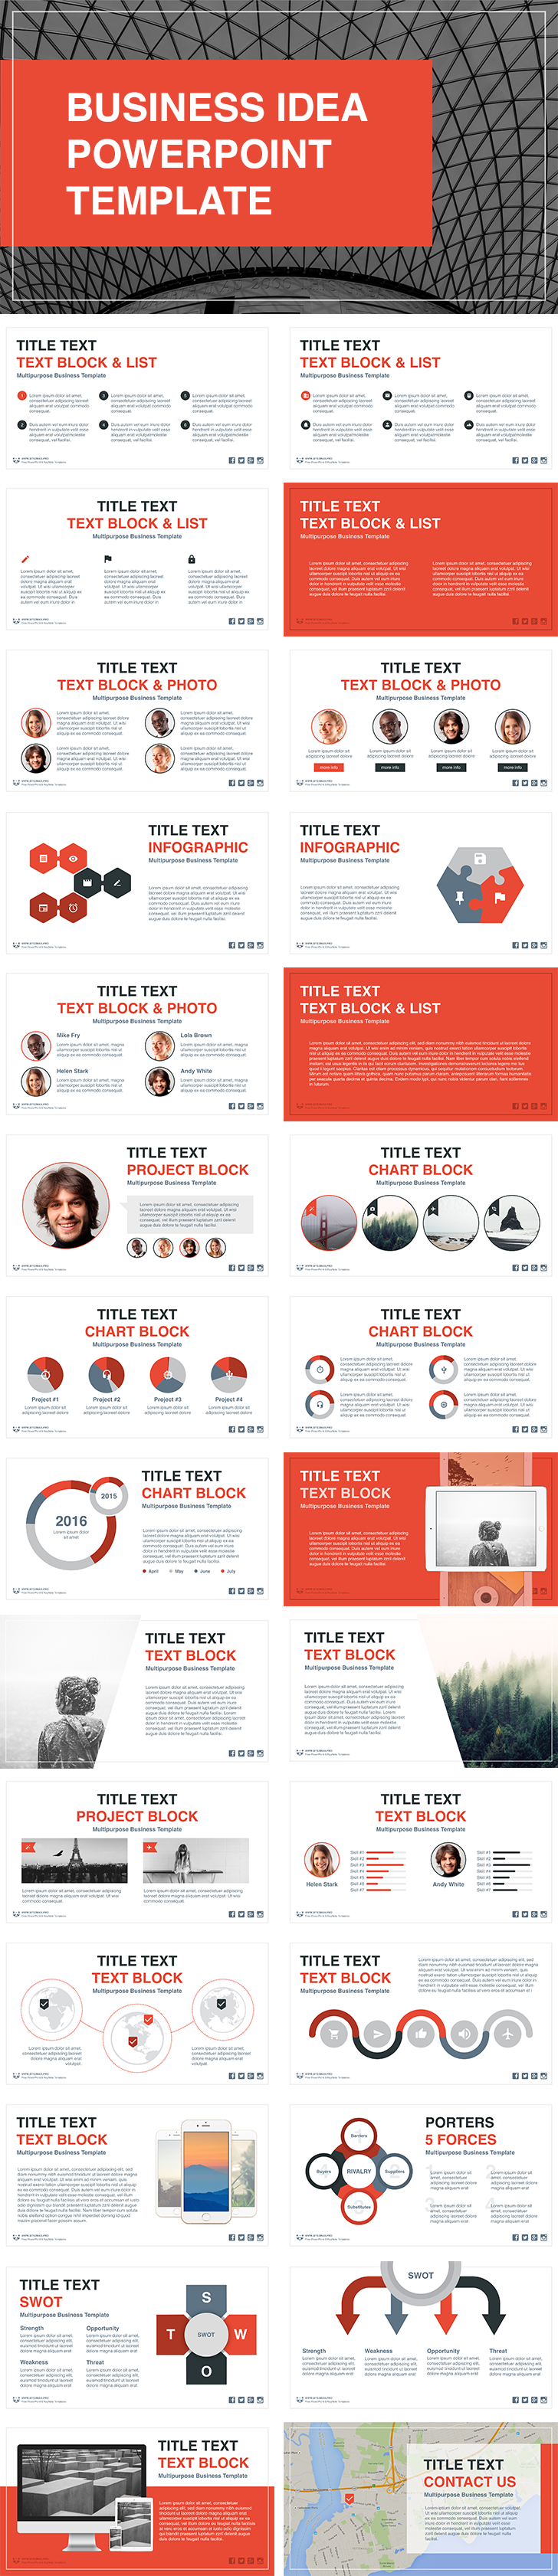 Business idea free powerpoint template download free business idea free powerpoint template pronofoot35fo Gallery